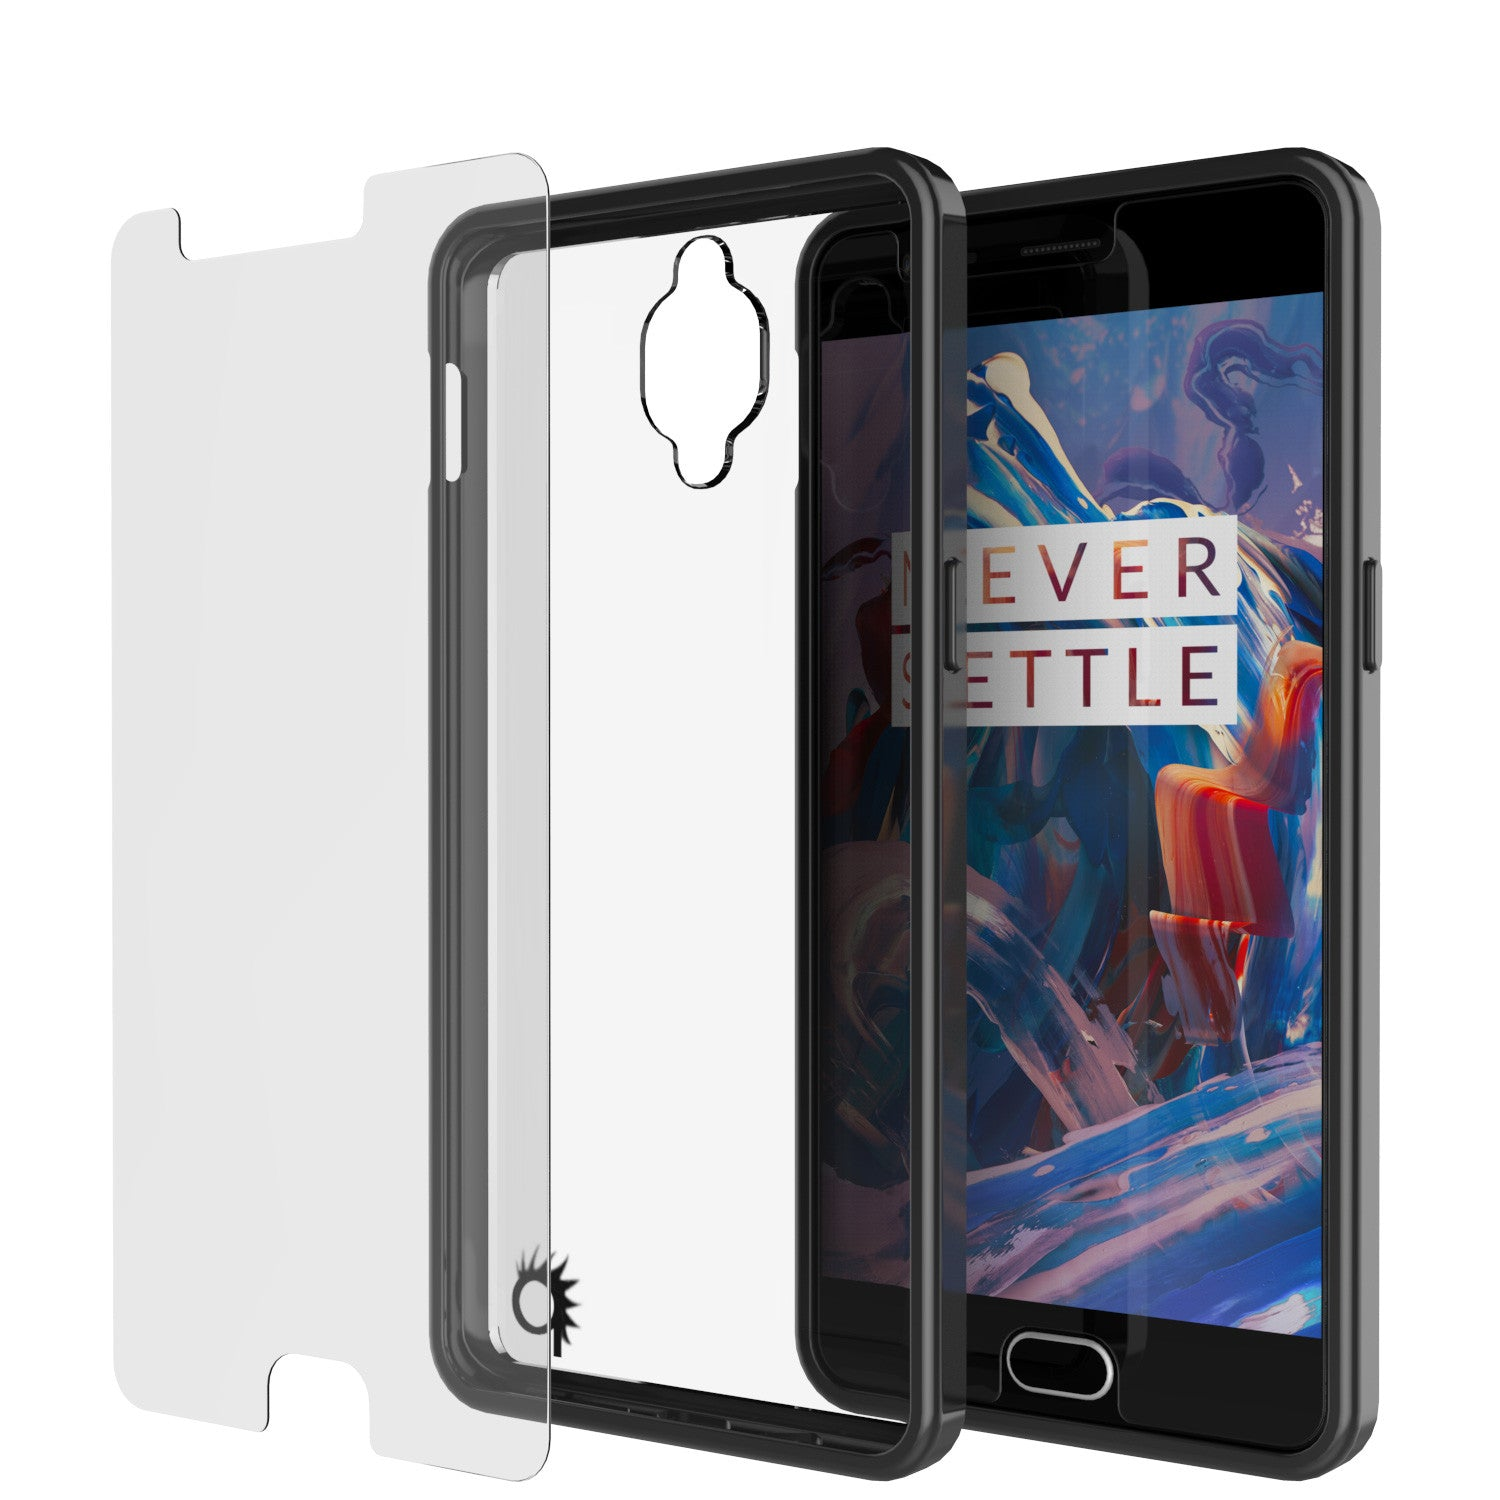 OnePlus 3 Case Punkcase® LUCID 2.0 Black Series w/ SHIELD GLASS Lifetime Warranty Exchange